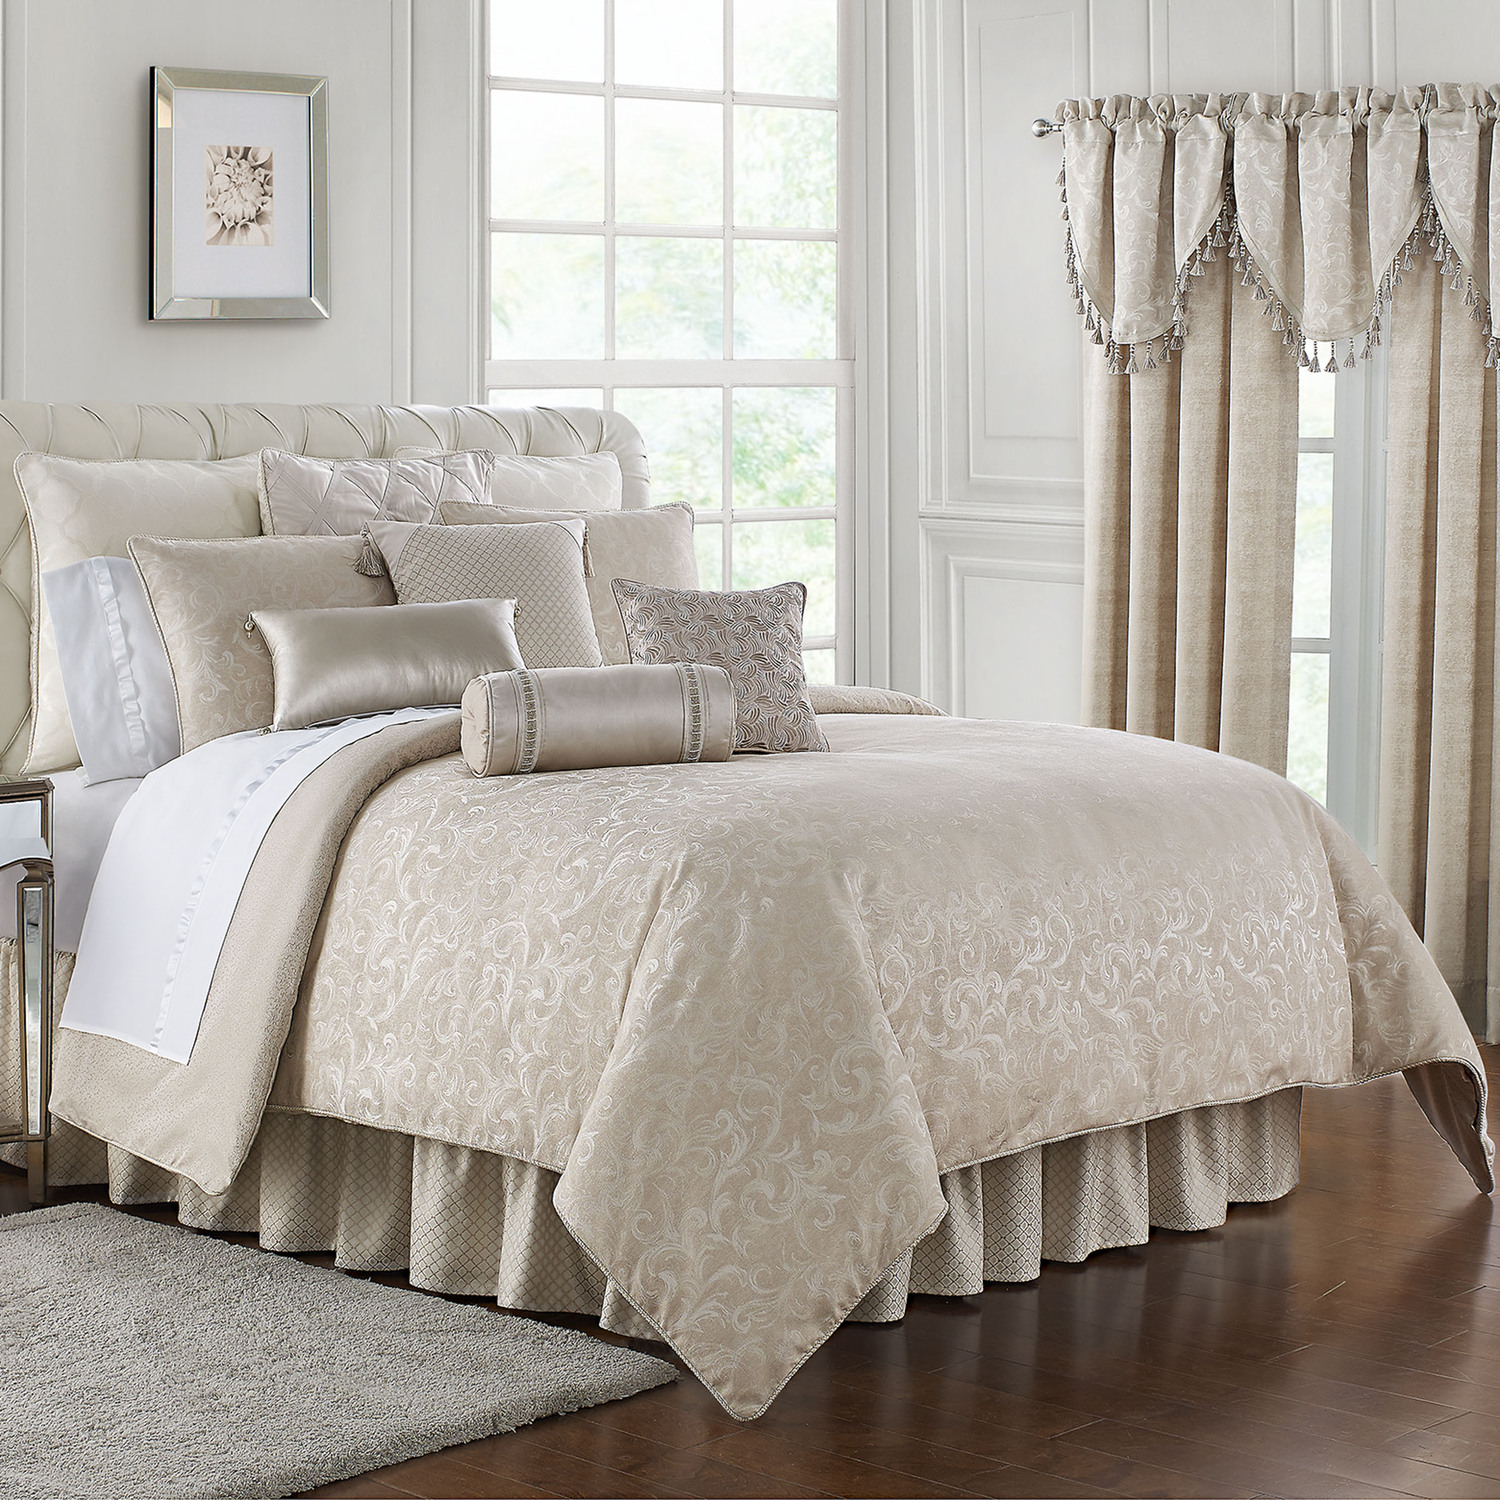 Gisella by Waterford Luxury Bedding   BeddingSuperStore.com